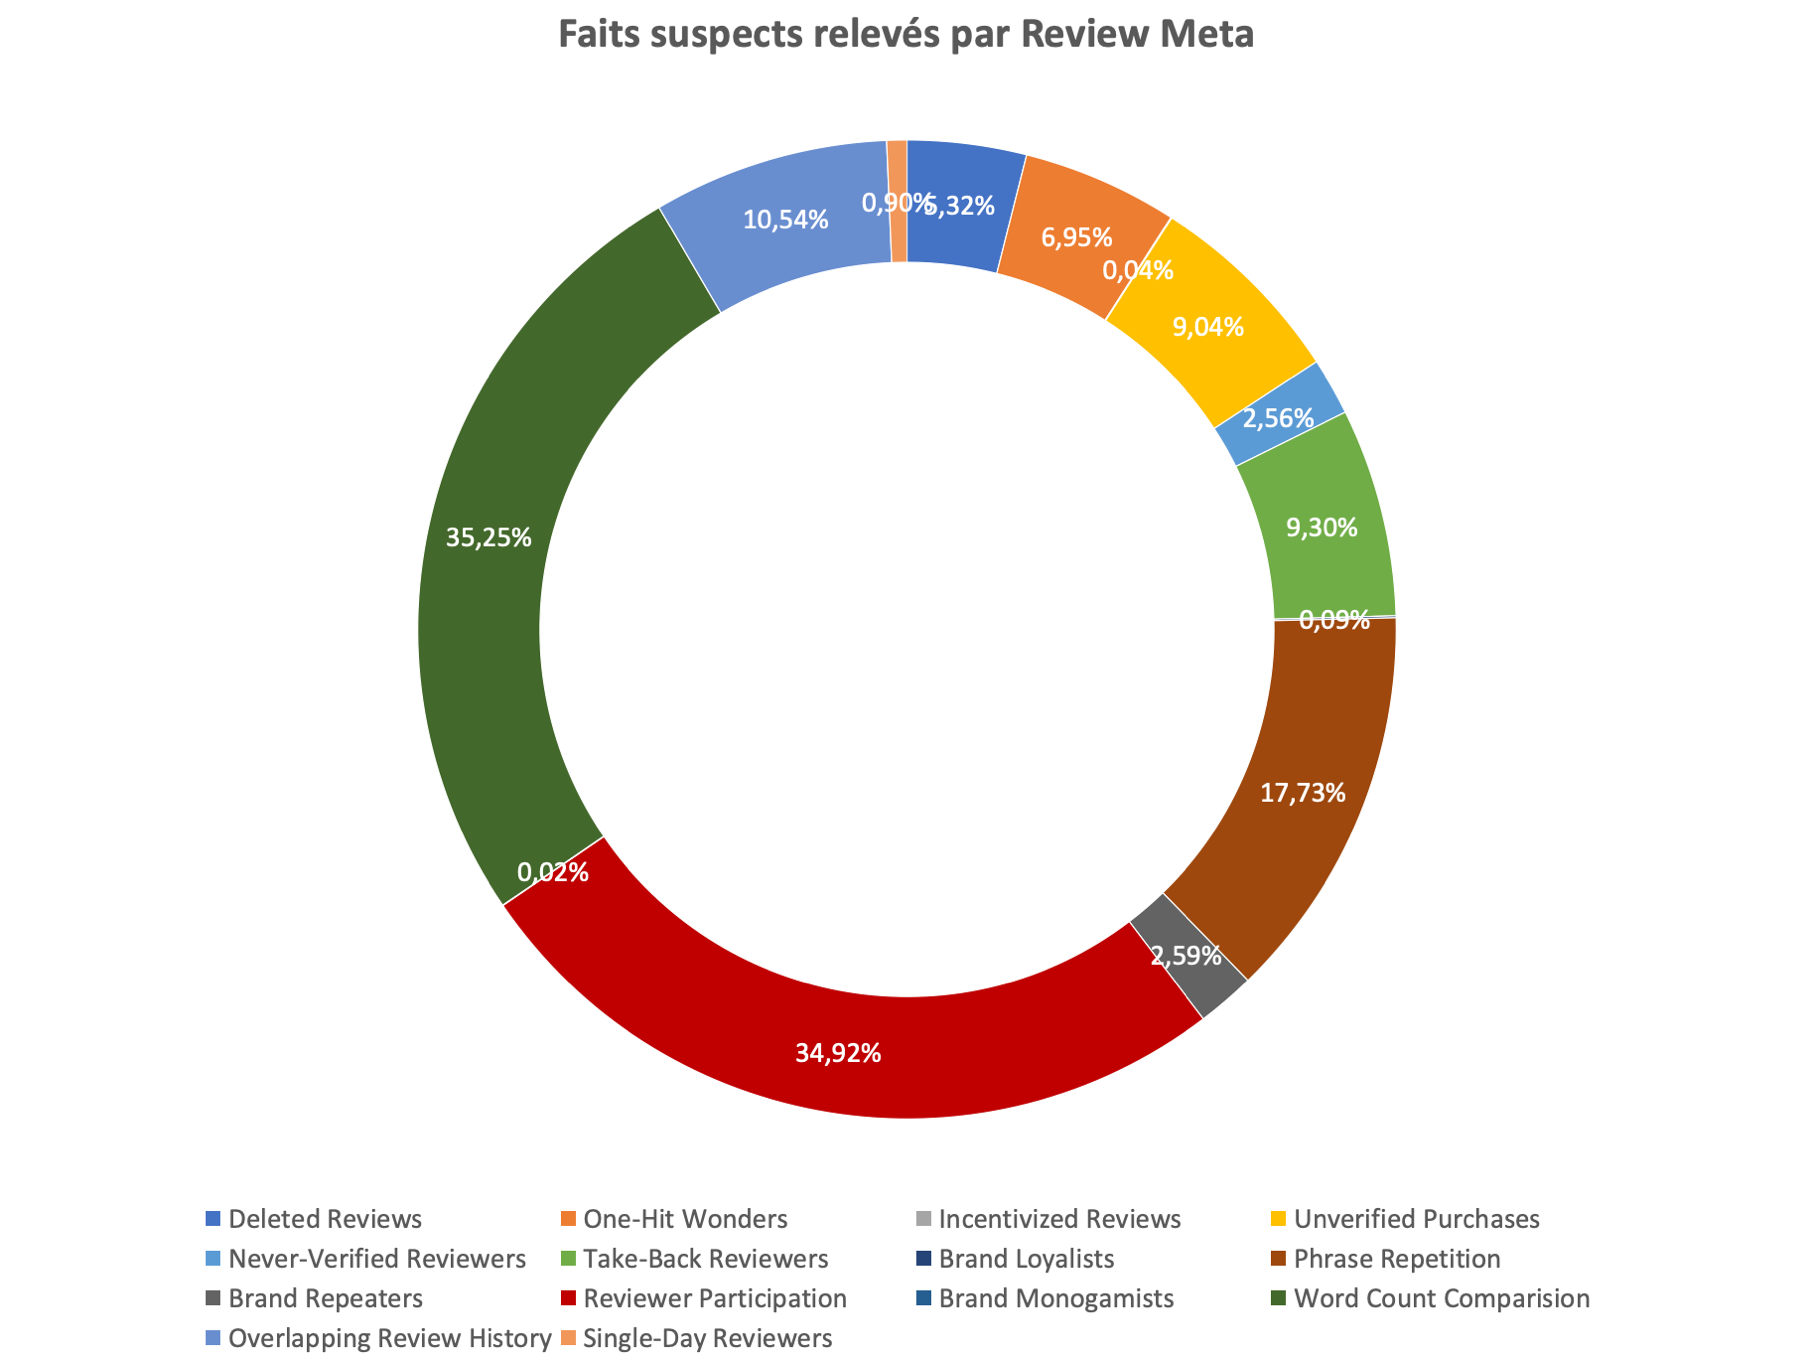 357321 faits%20suspects%20releve%cc%81s%20par%20review%20meta%20 589c49 original 1592817668